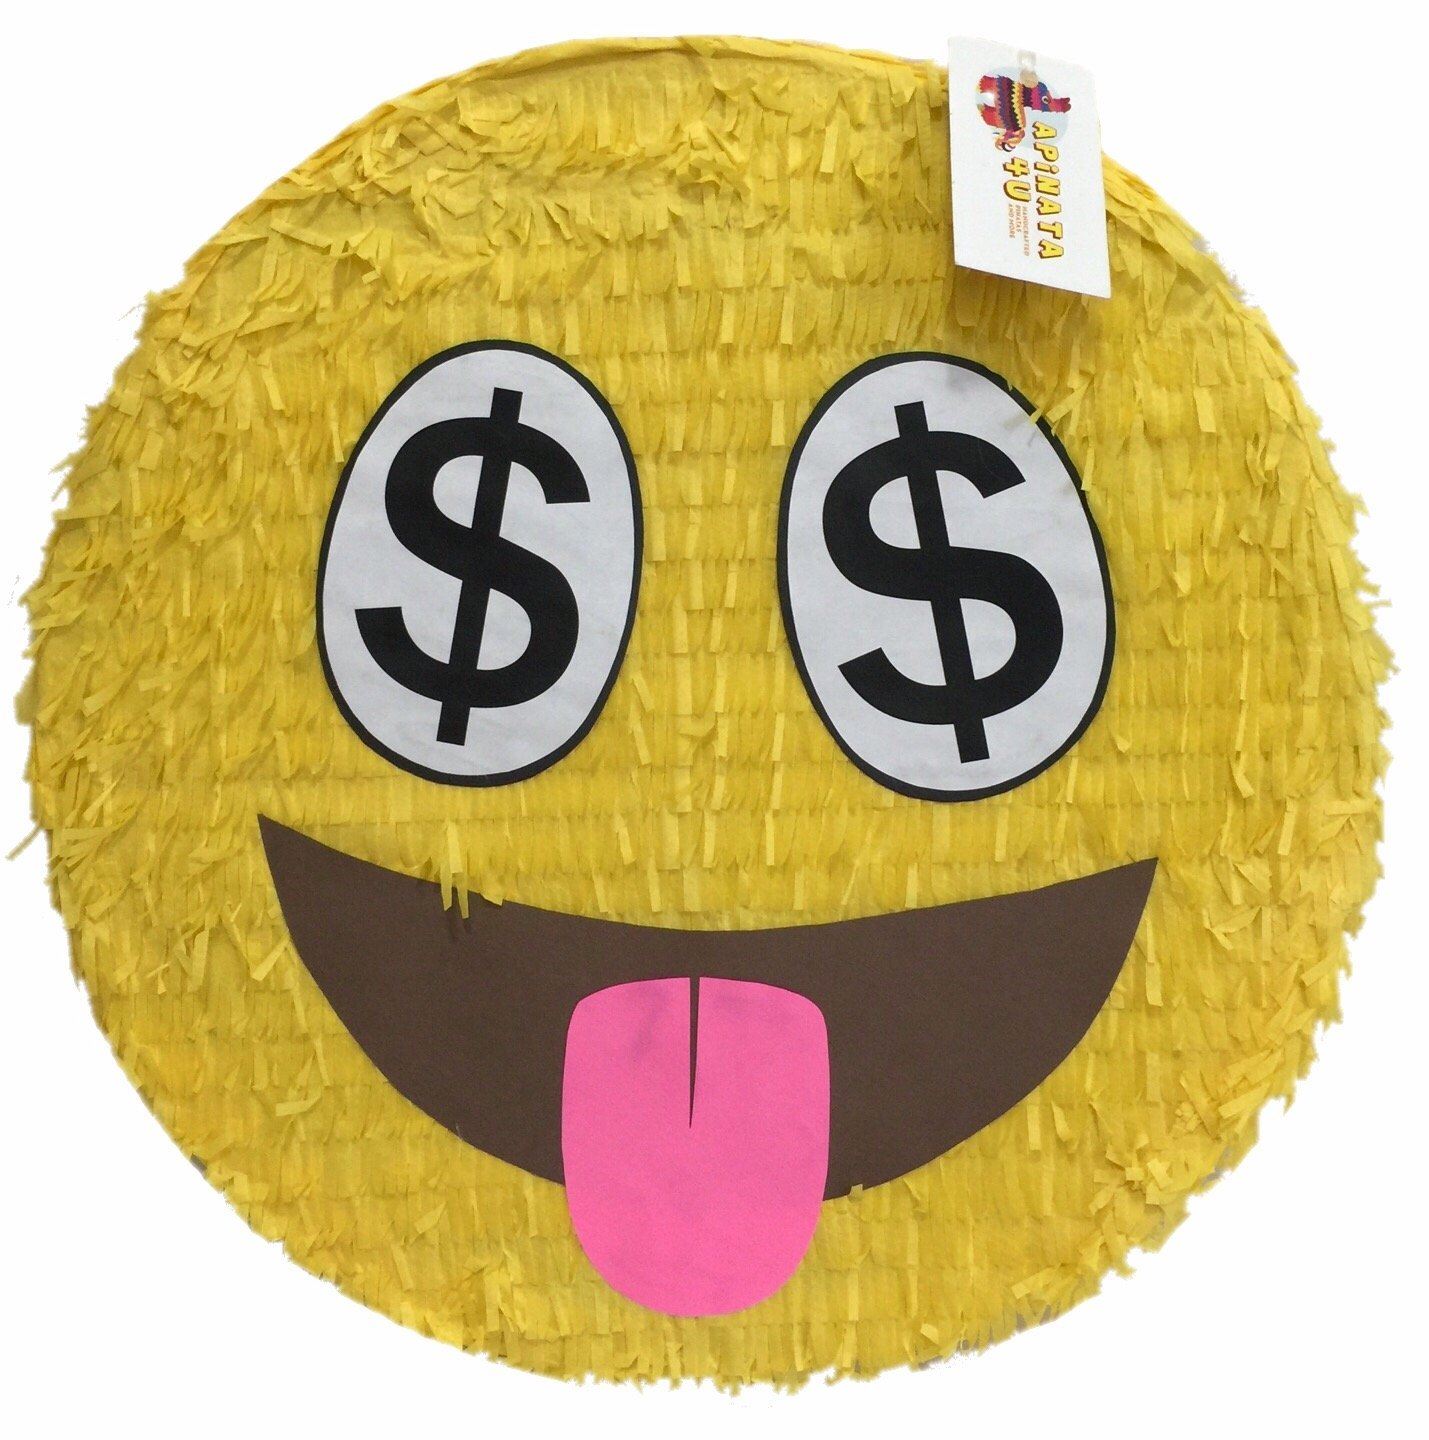 For the Love of Money Emoji Pinata